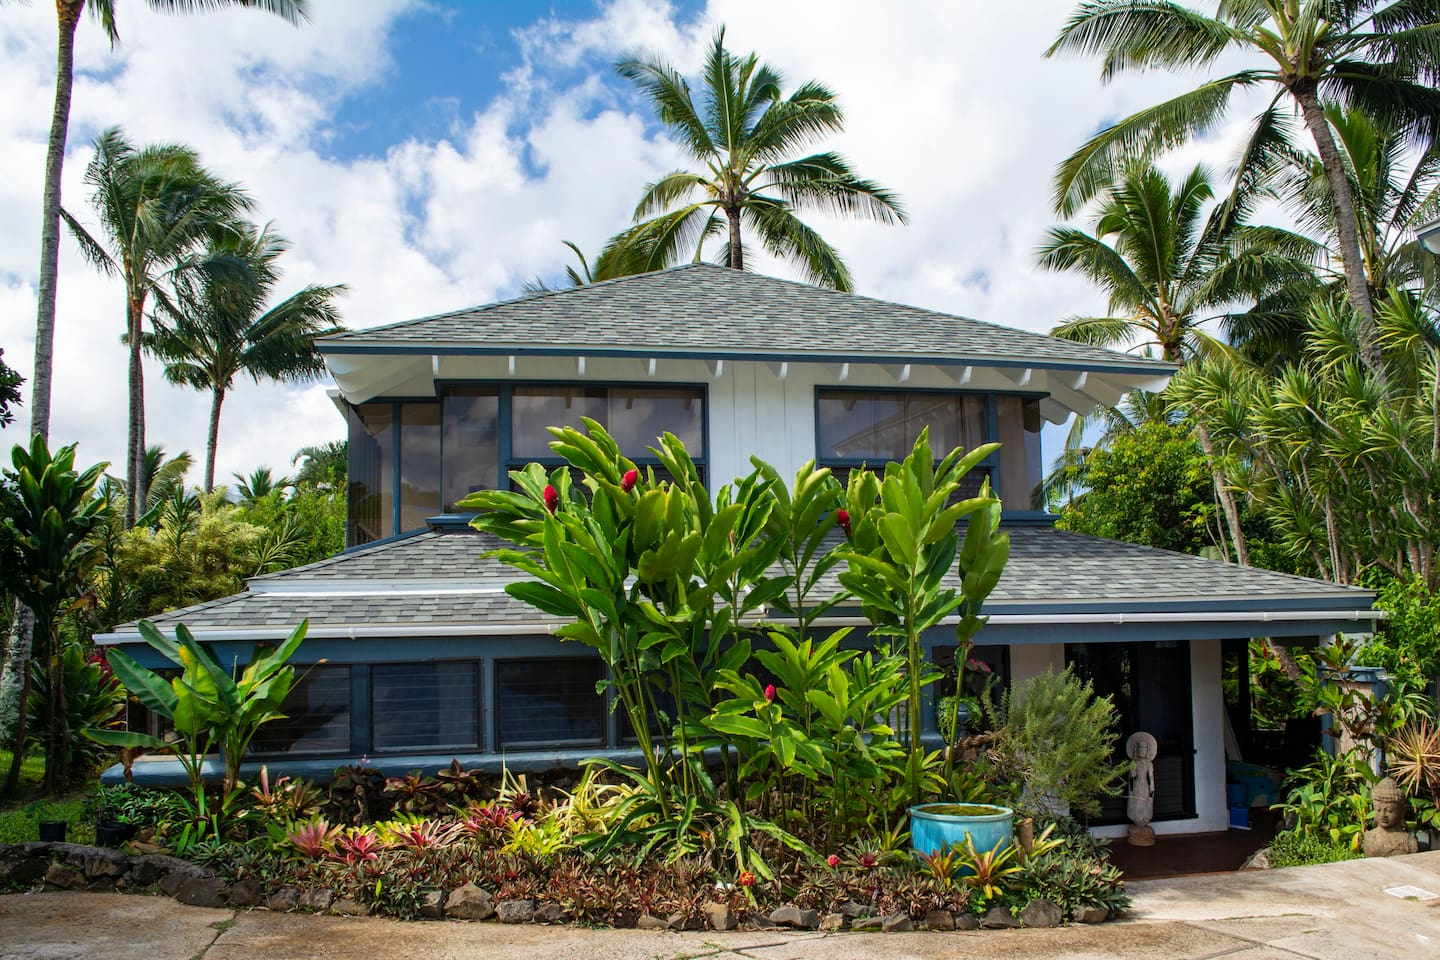 The beautiful Hale Hokule'a - main house for vacation rental on property.